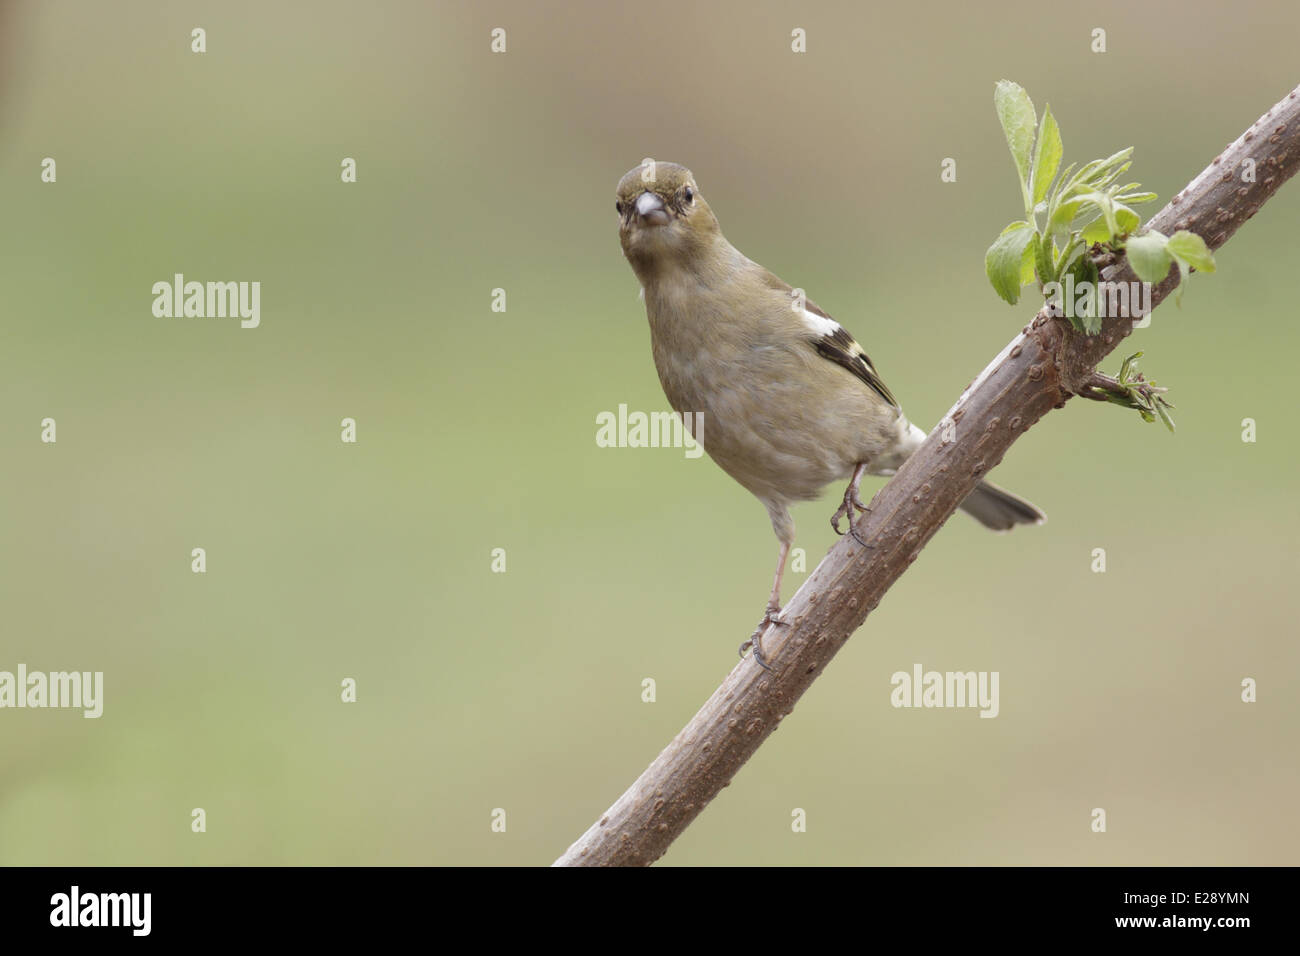 Common Chaffinch (Fringilla coelebs) adult female, perched on twig, West Yorkshire, England, March - Stock Image